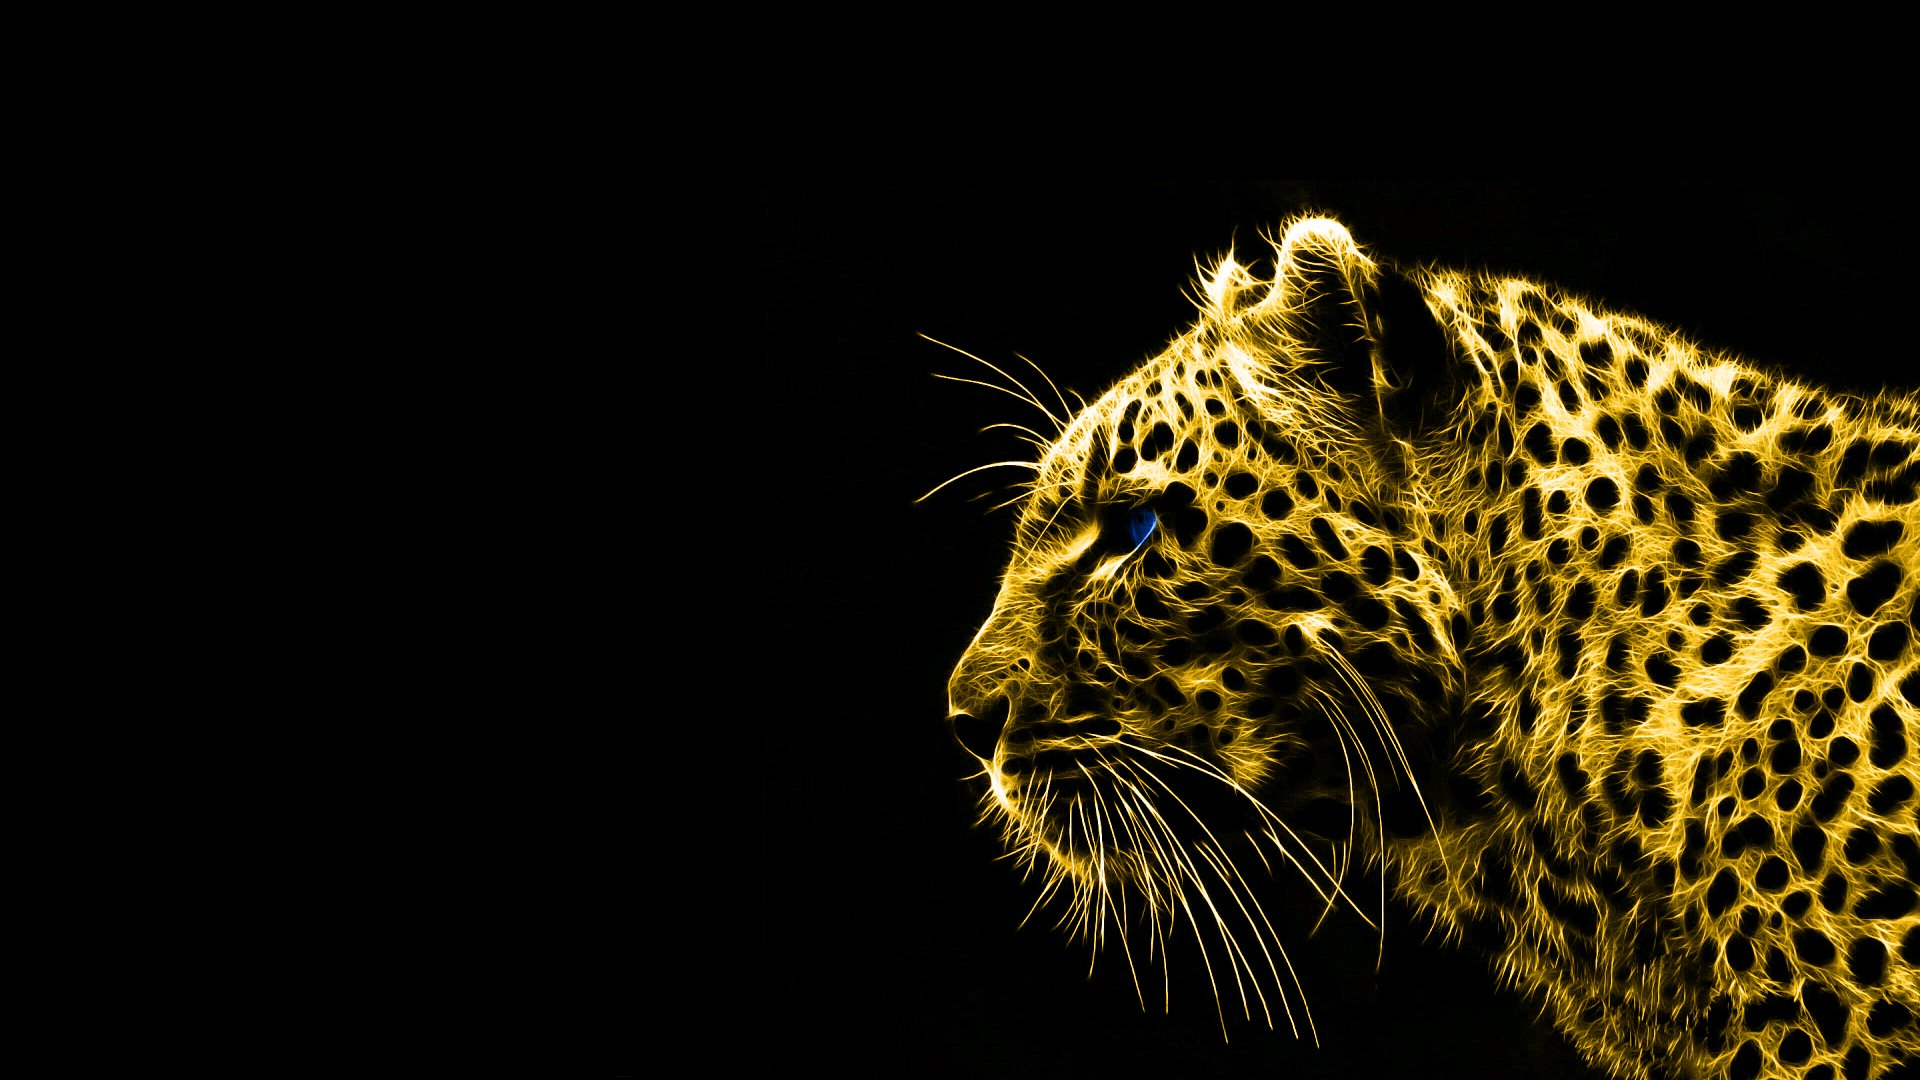 animals gold spirit leopards black background HD Wallpaper 1920x1080